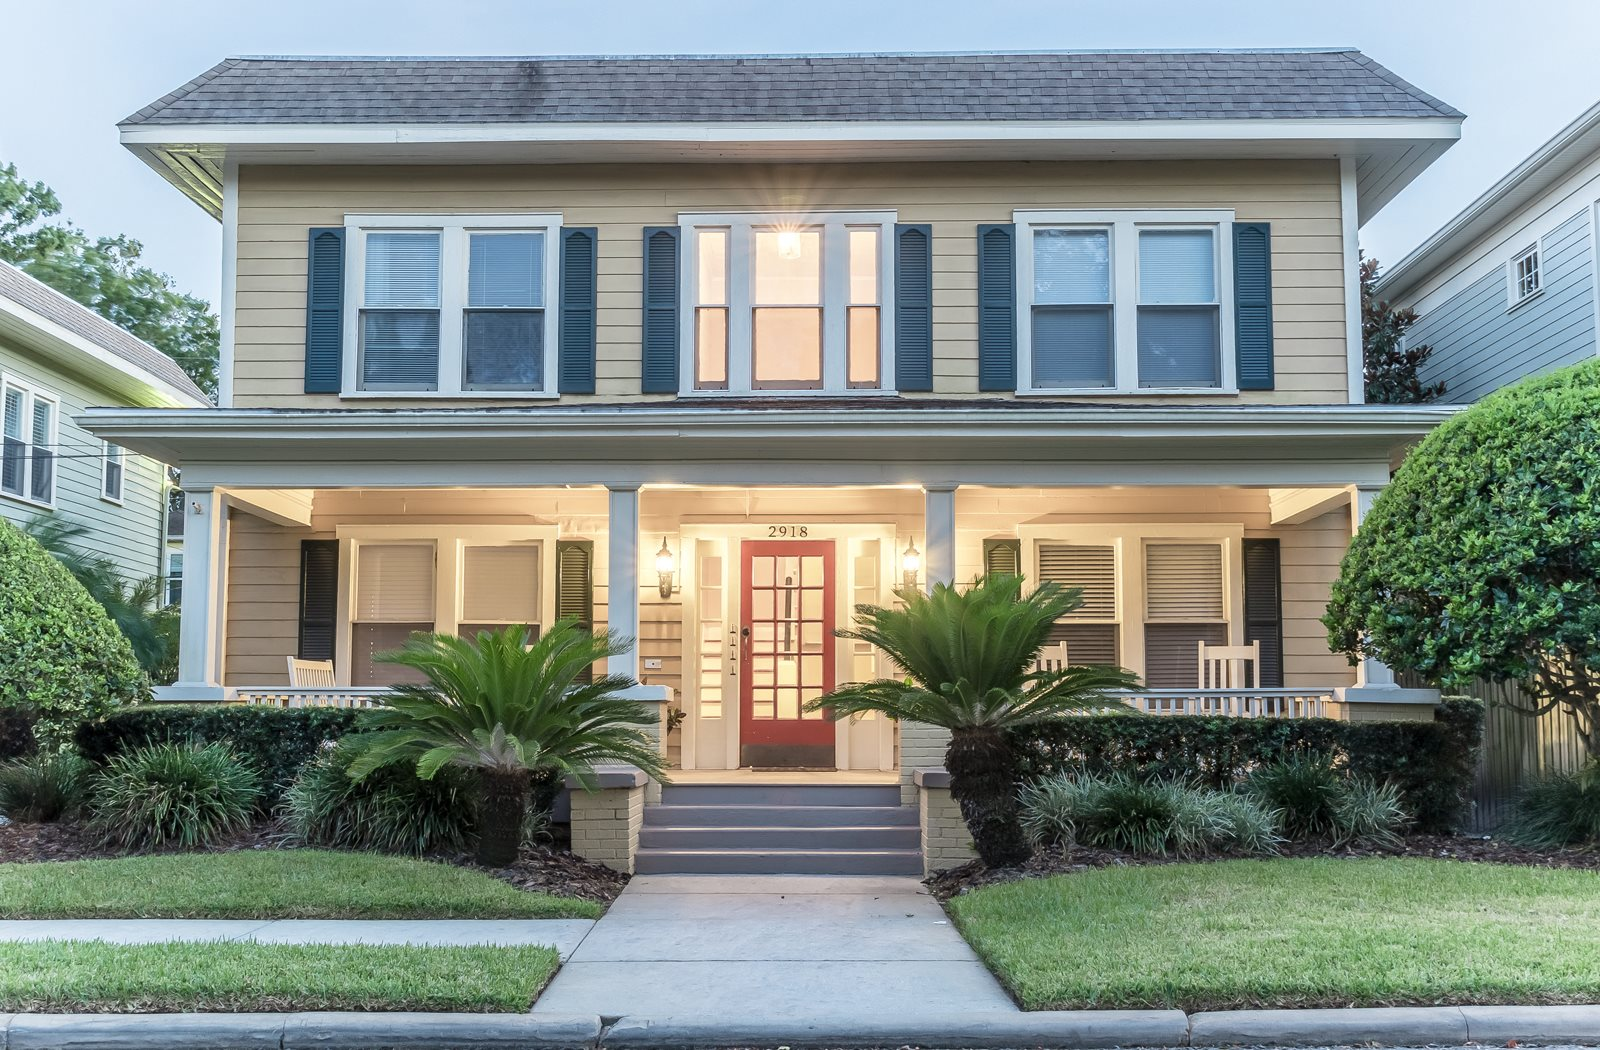 Tampa homepagegallery 1